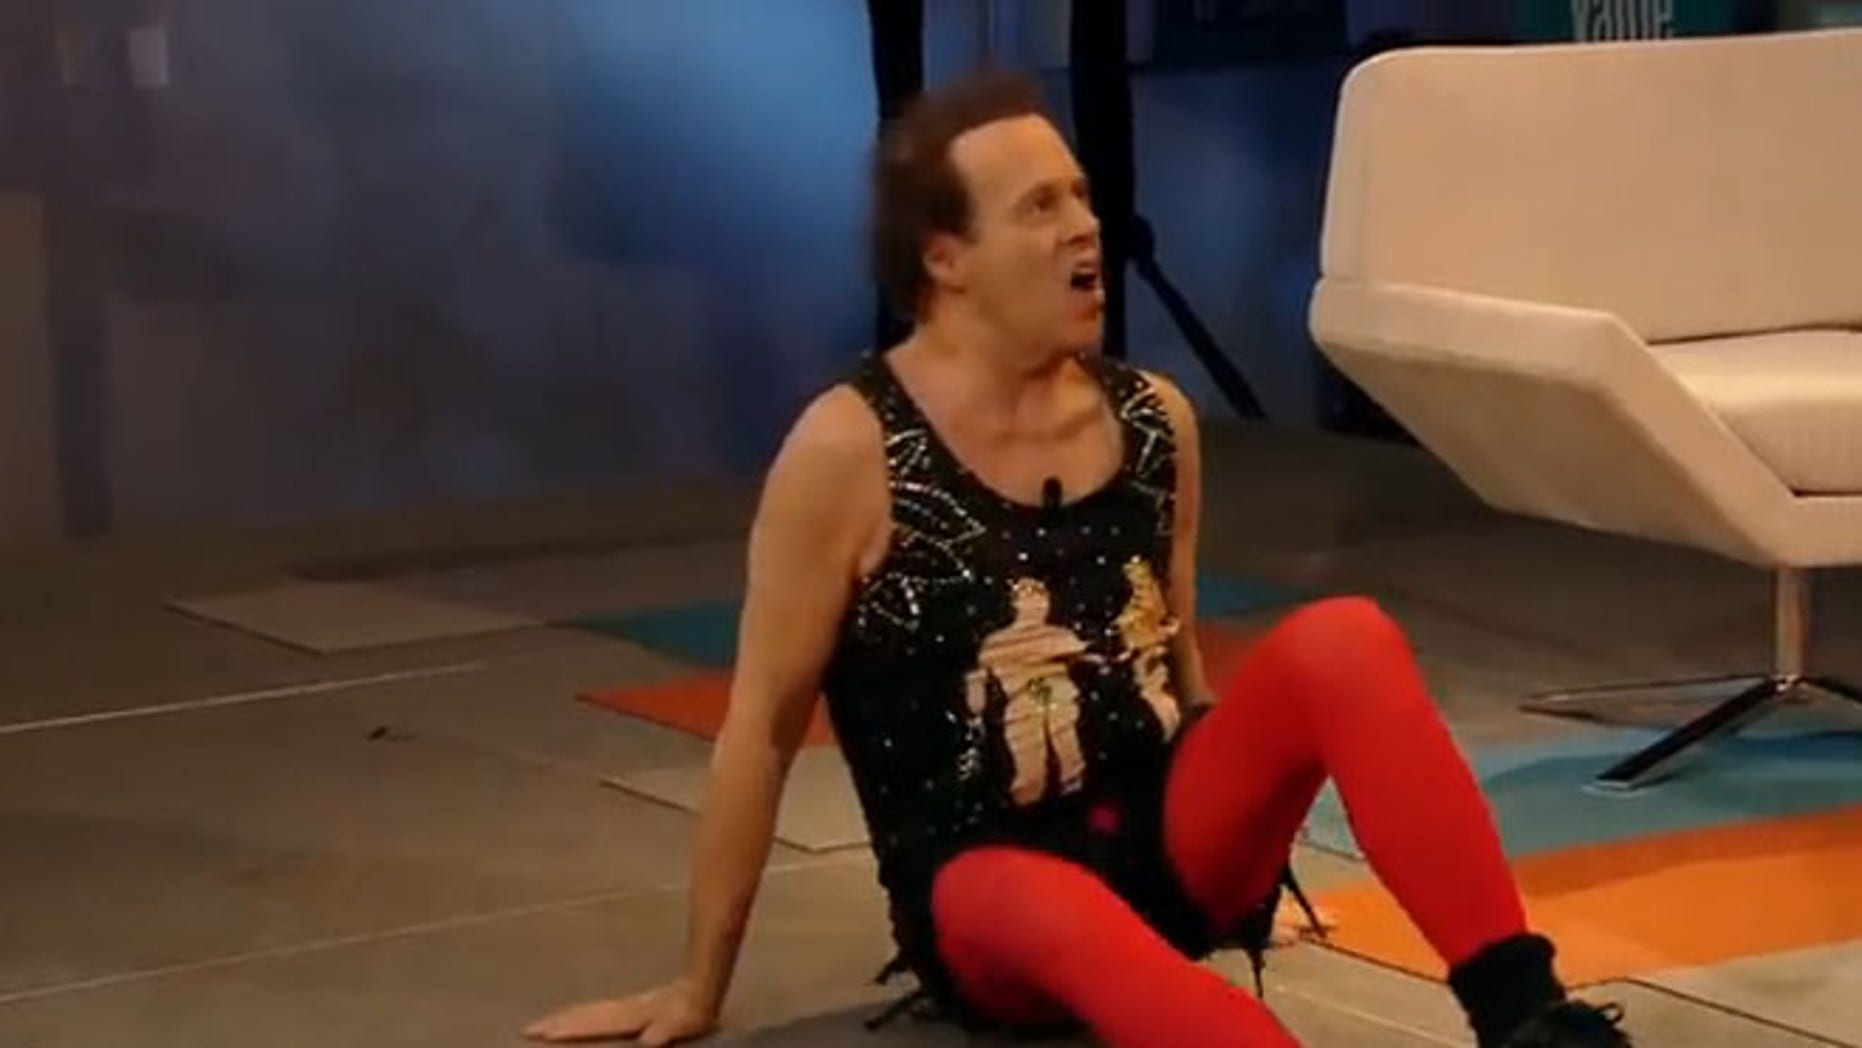 Shown here is an image from the web stream featuring Richard Simmons, in promotion of ObamaCare in California.